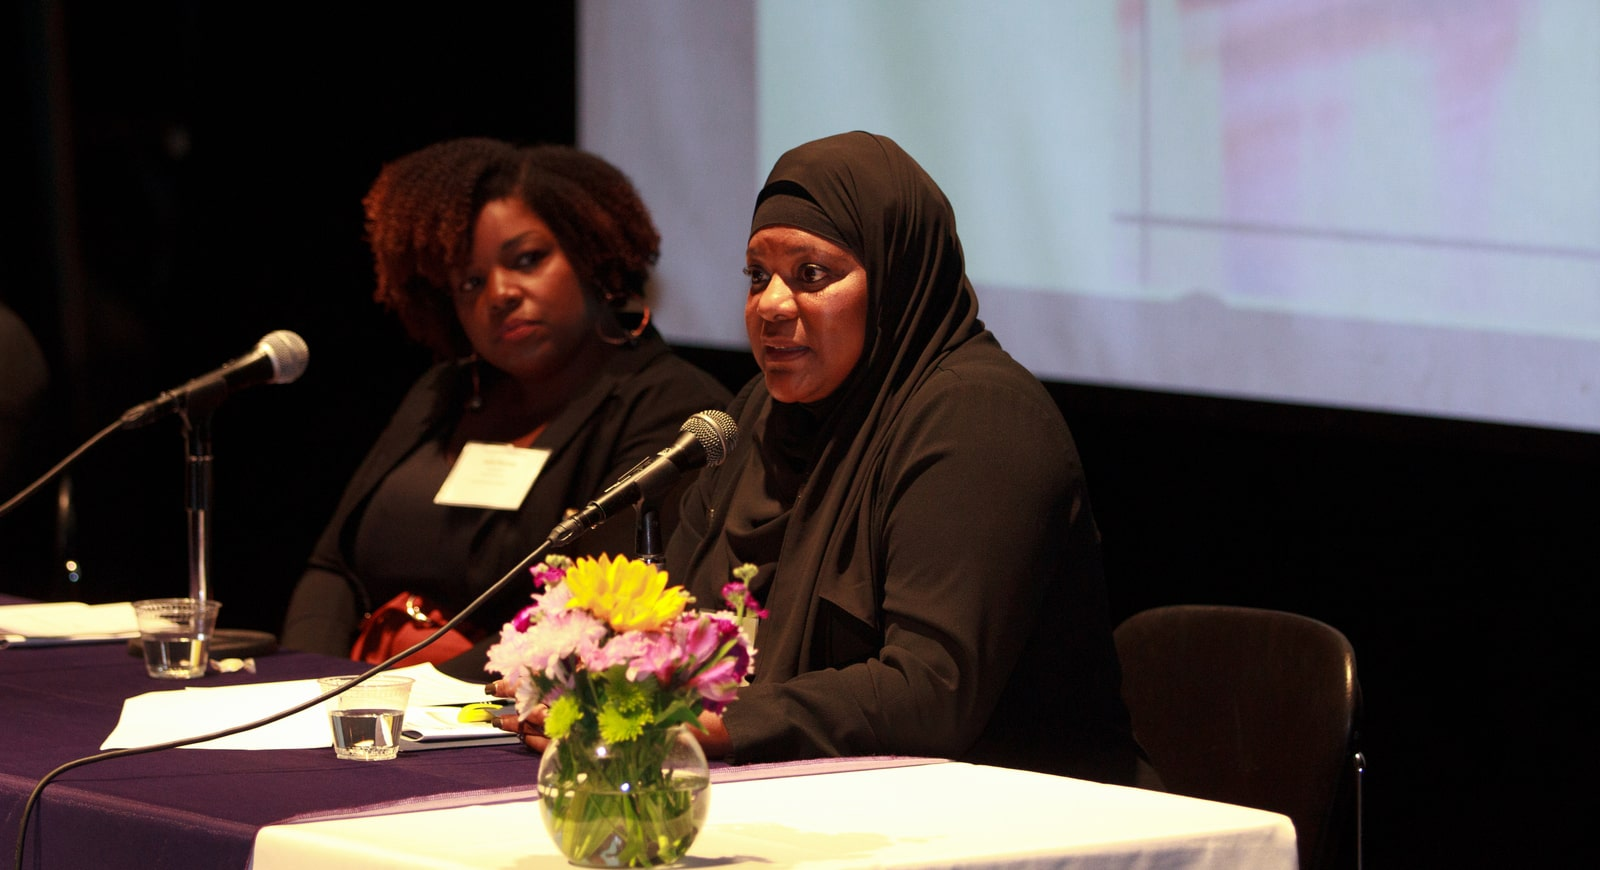 Photo of two Black women on a panel. The hijabi woman is speaking, while the woman beside her listens.